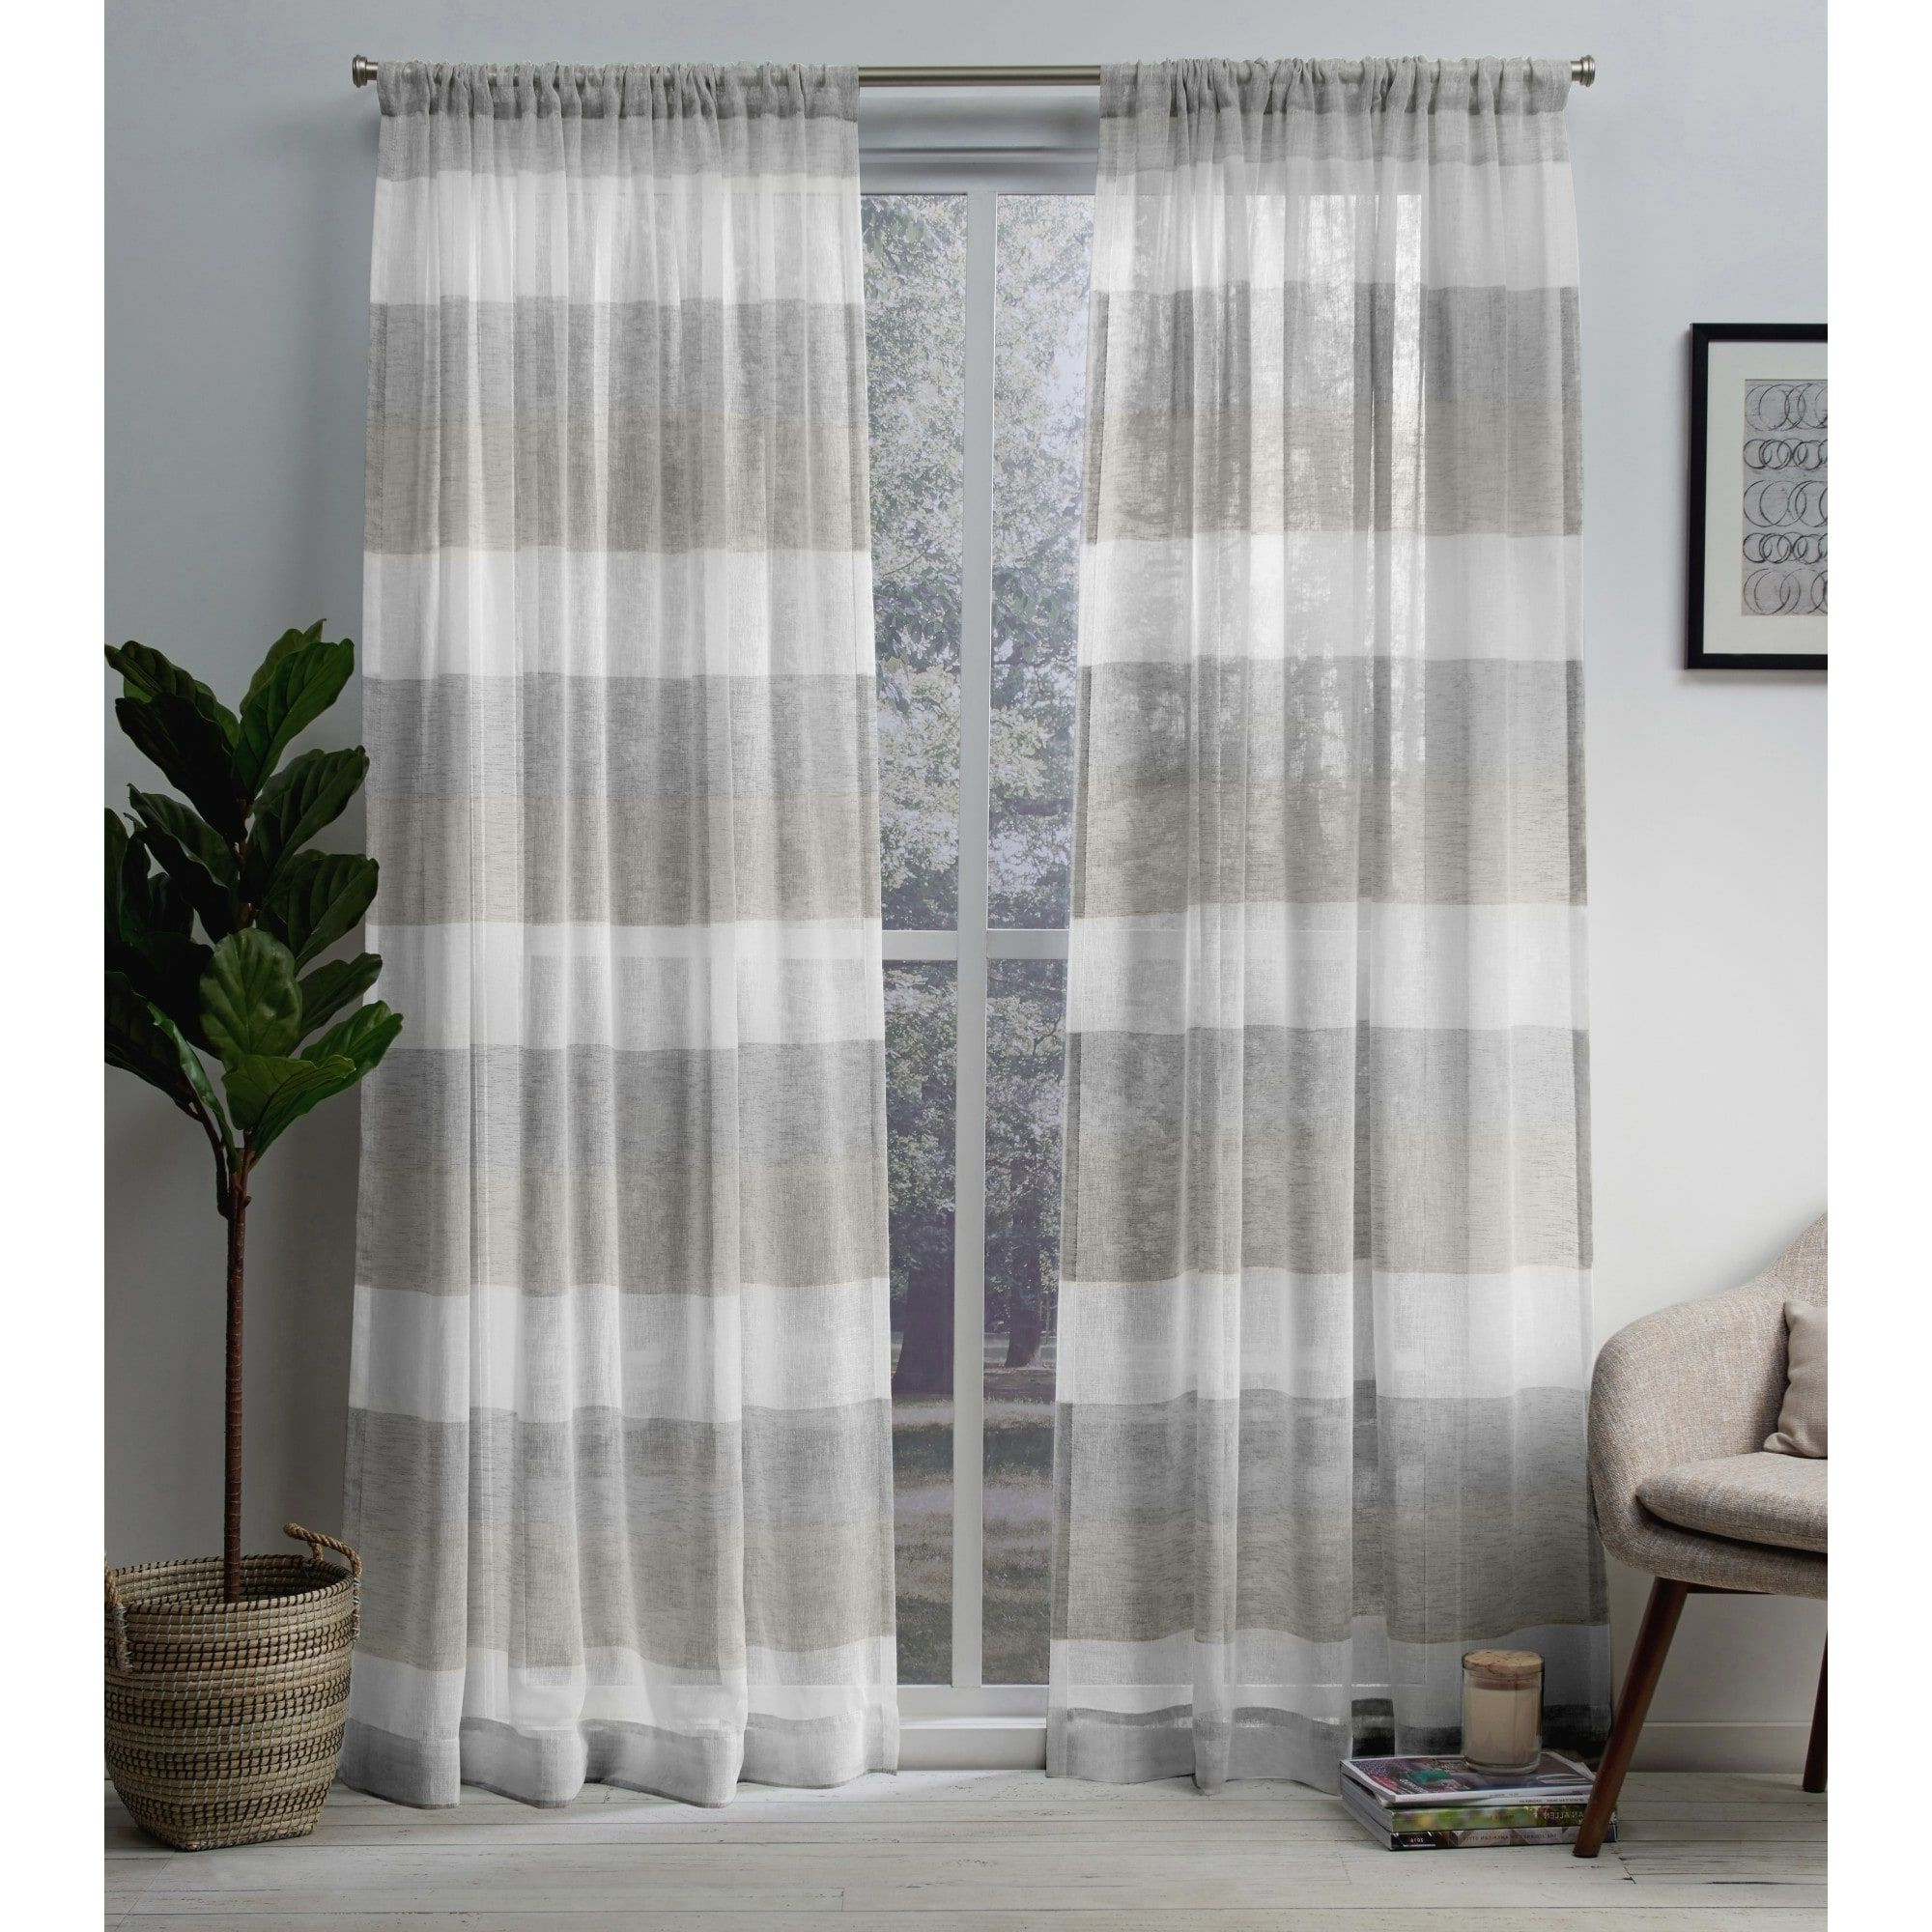 Porch & Den Ocean Stripe Sheer Curtain Panel Pair With Rod Within Most Recently Released Ocean Striped Window Curtain Panel Pairs With Grommet Top (View 15 of 20)